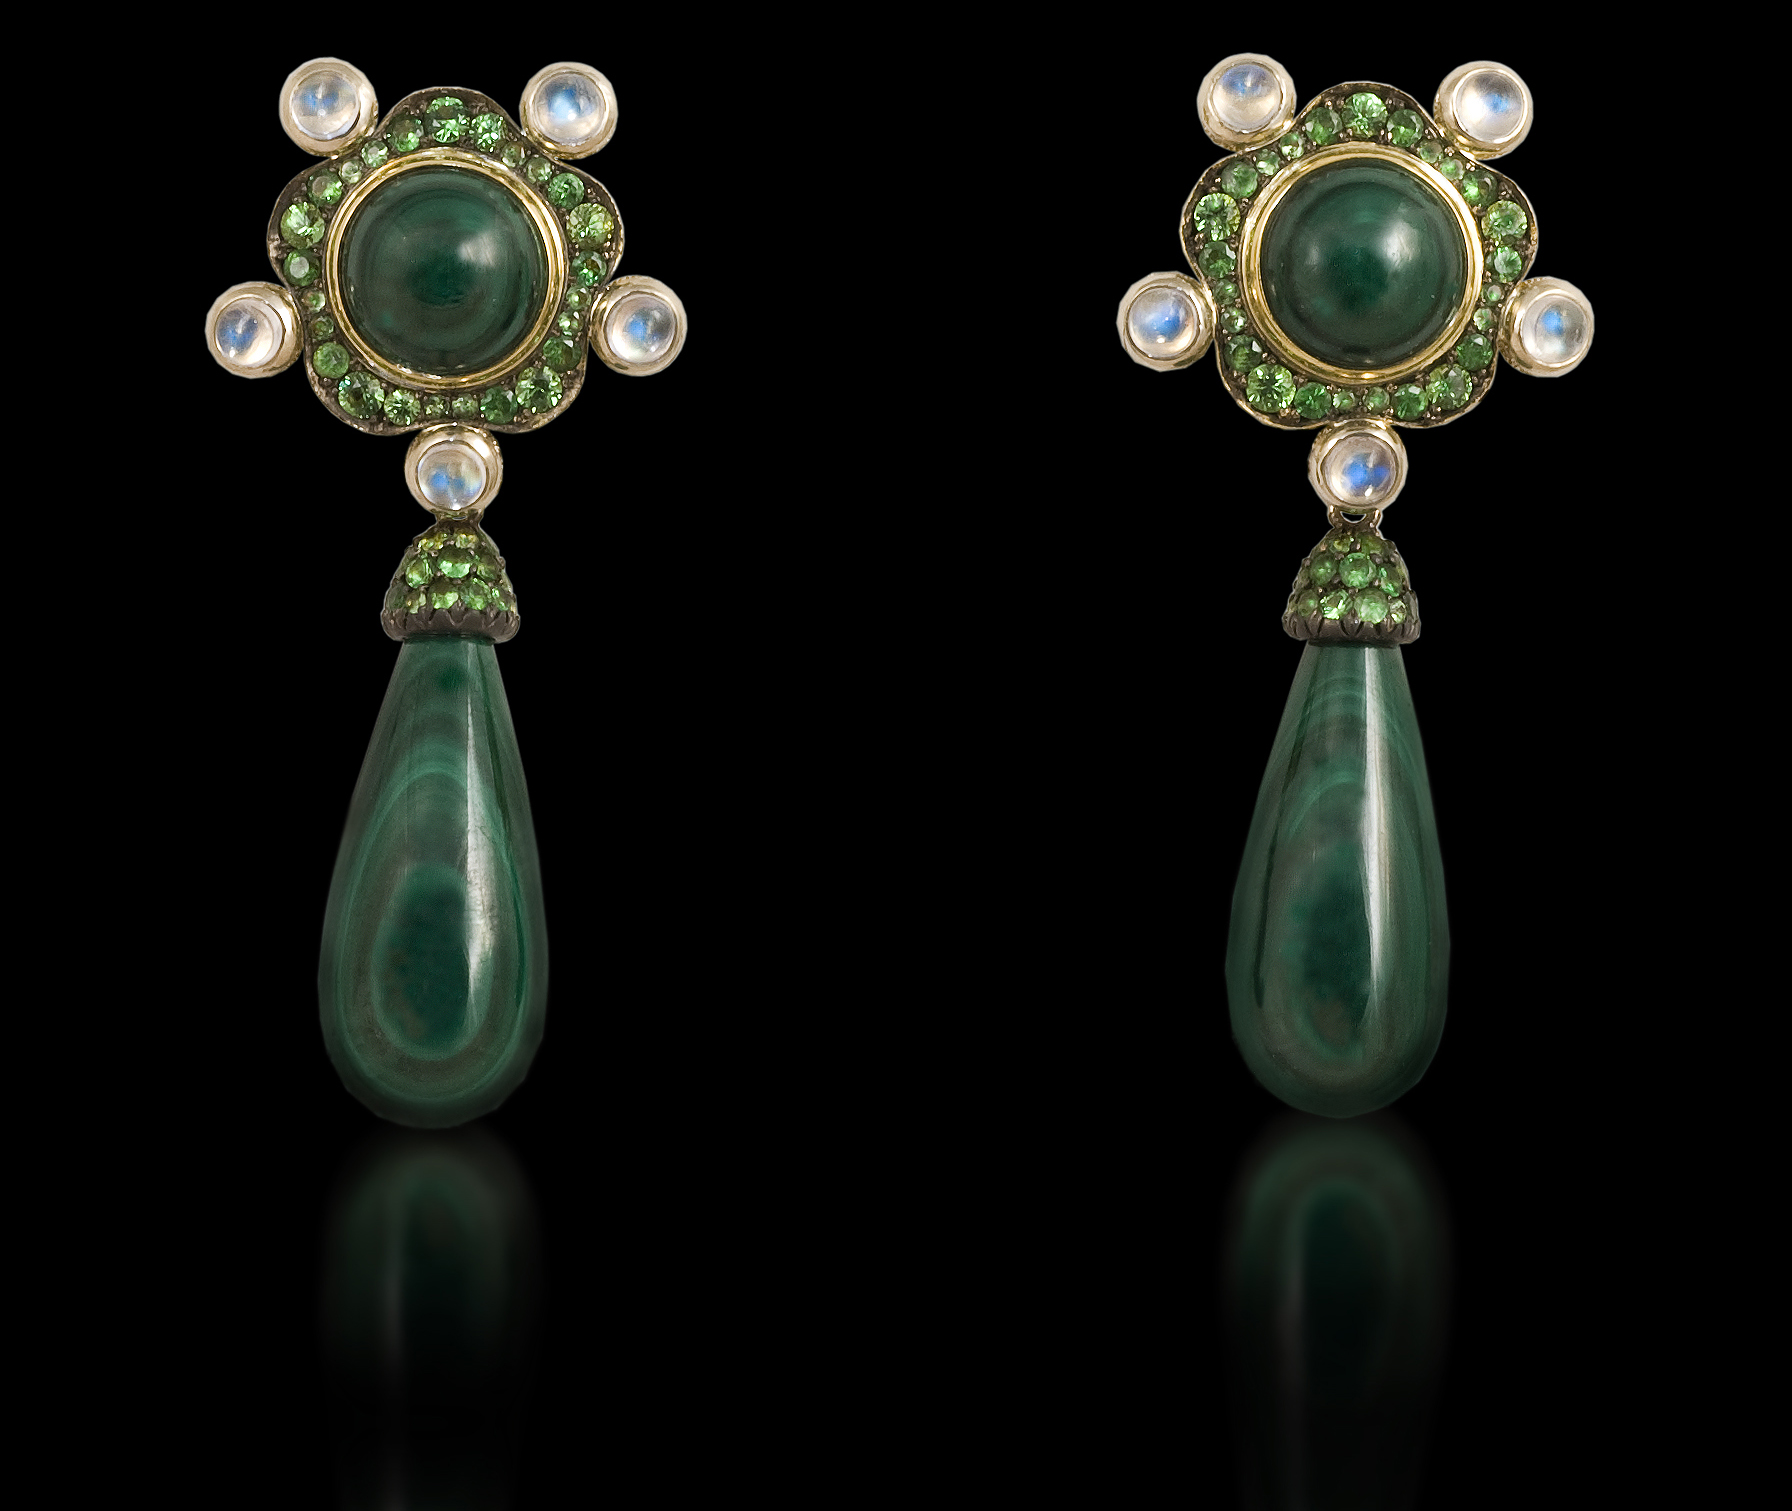 Ethiopian Queen   In the darkness of the green forest jewels of water and gems sparkle in the night.    Earrings in 18 karat White Gold, with Malachite, Moonstone, and Green Garnet      $4.500